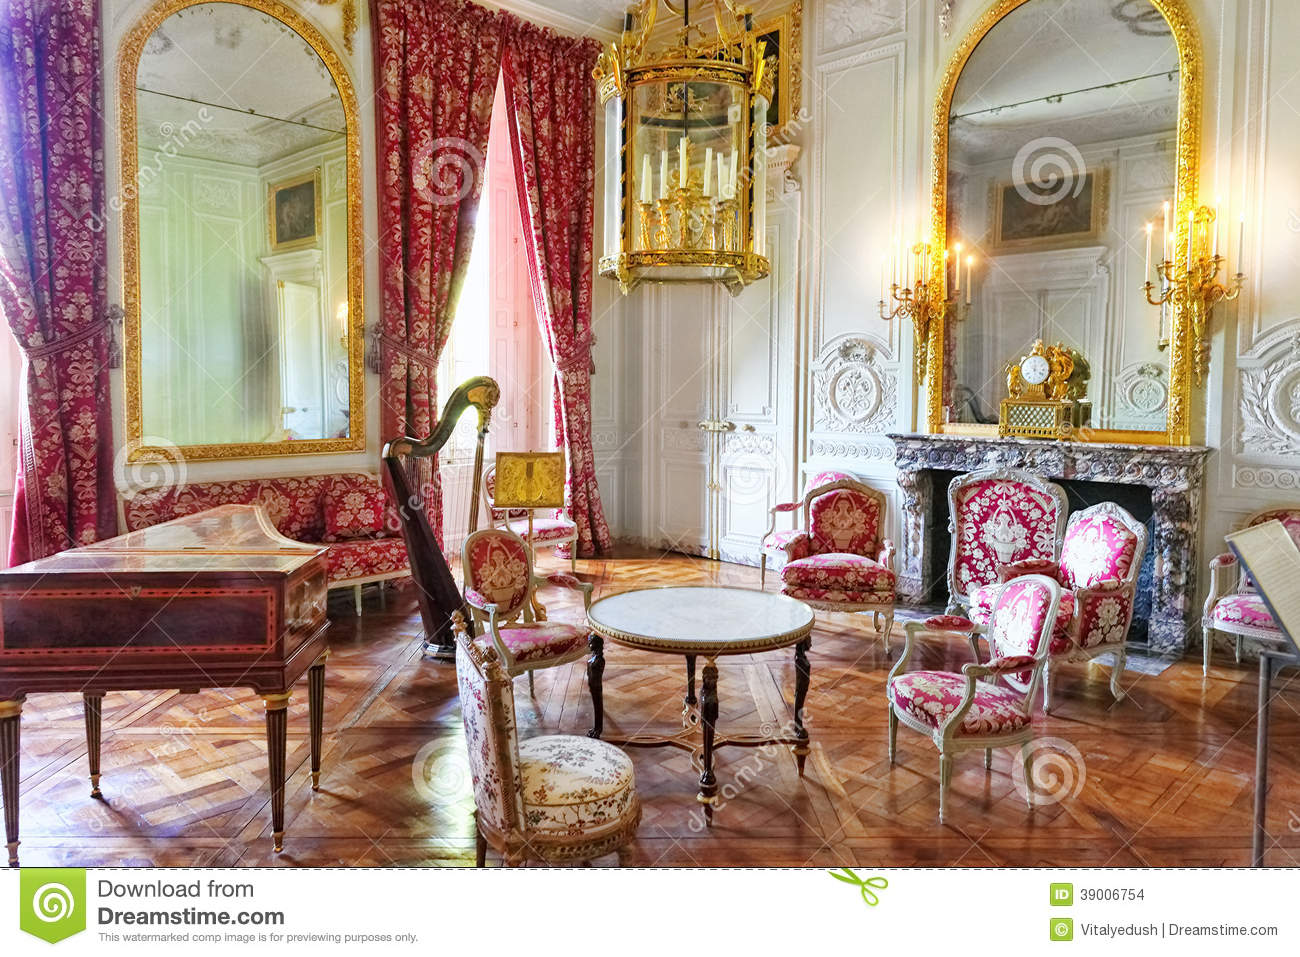 Ch teau int rieur de versailles paris france photo for Interieur france